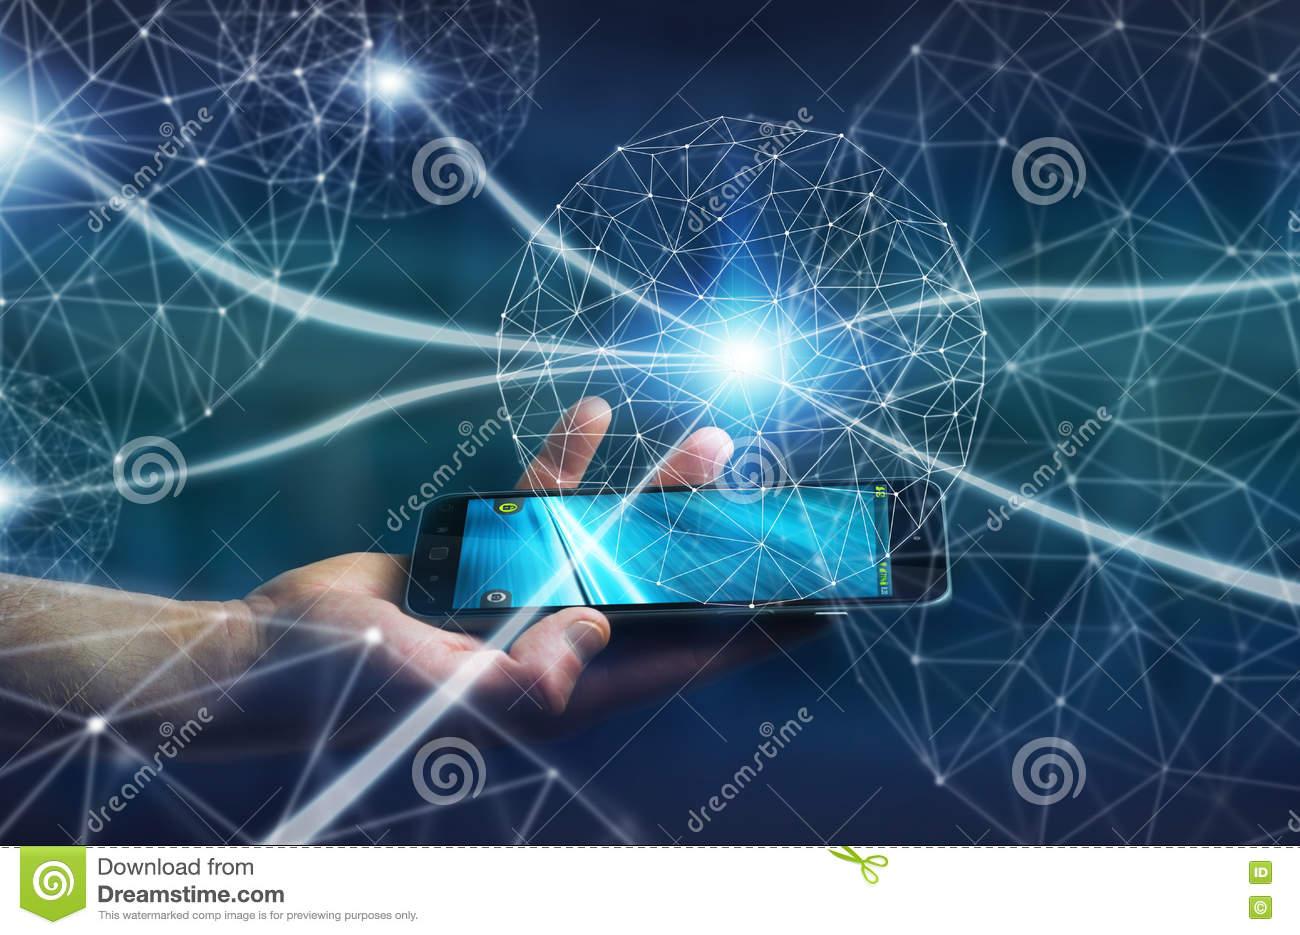 Businessman using data network with his mobile phone